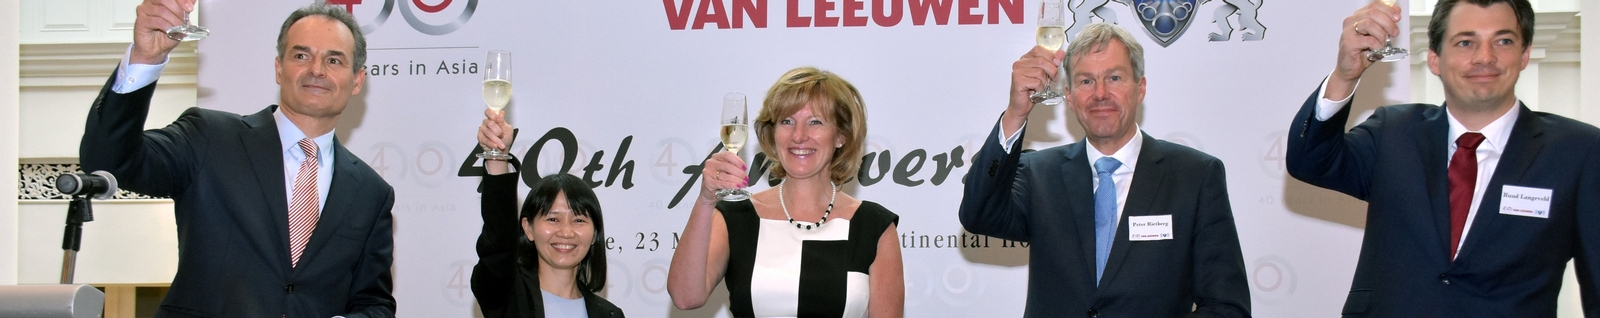 Celebration of 40 years Van Leeuwen in Asia